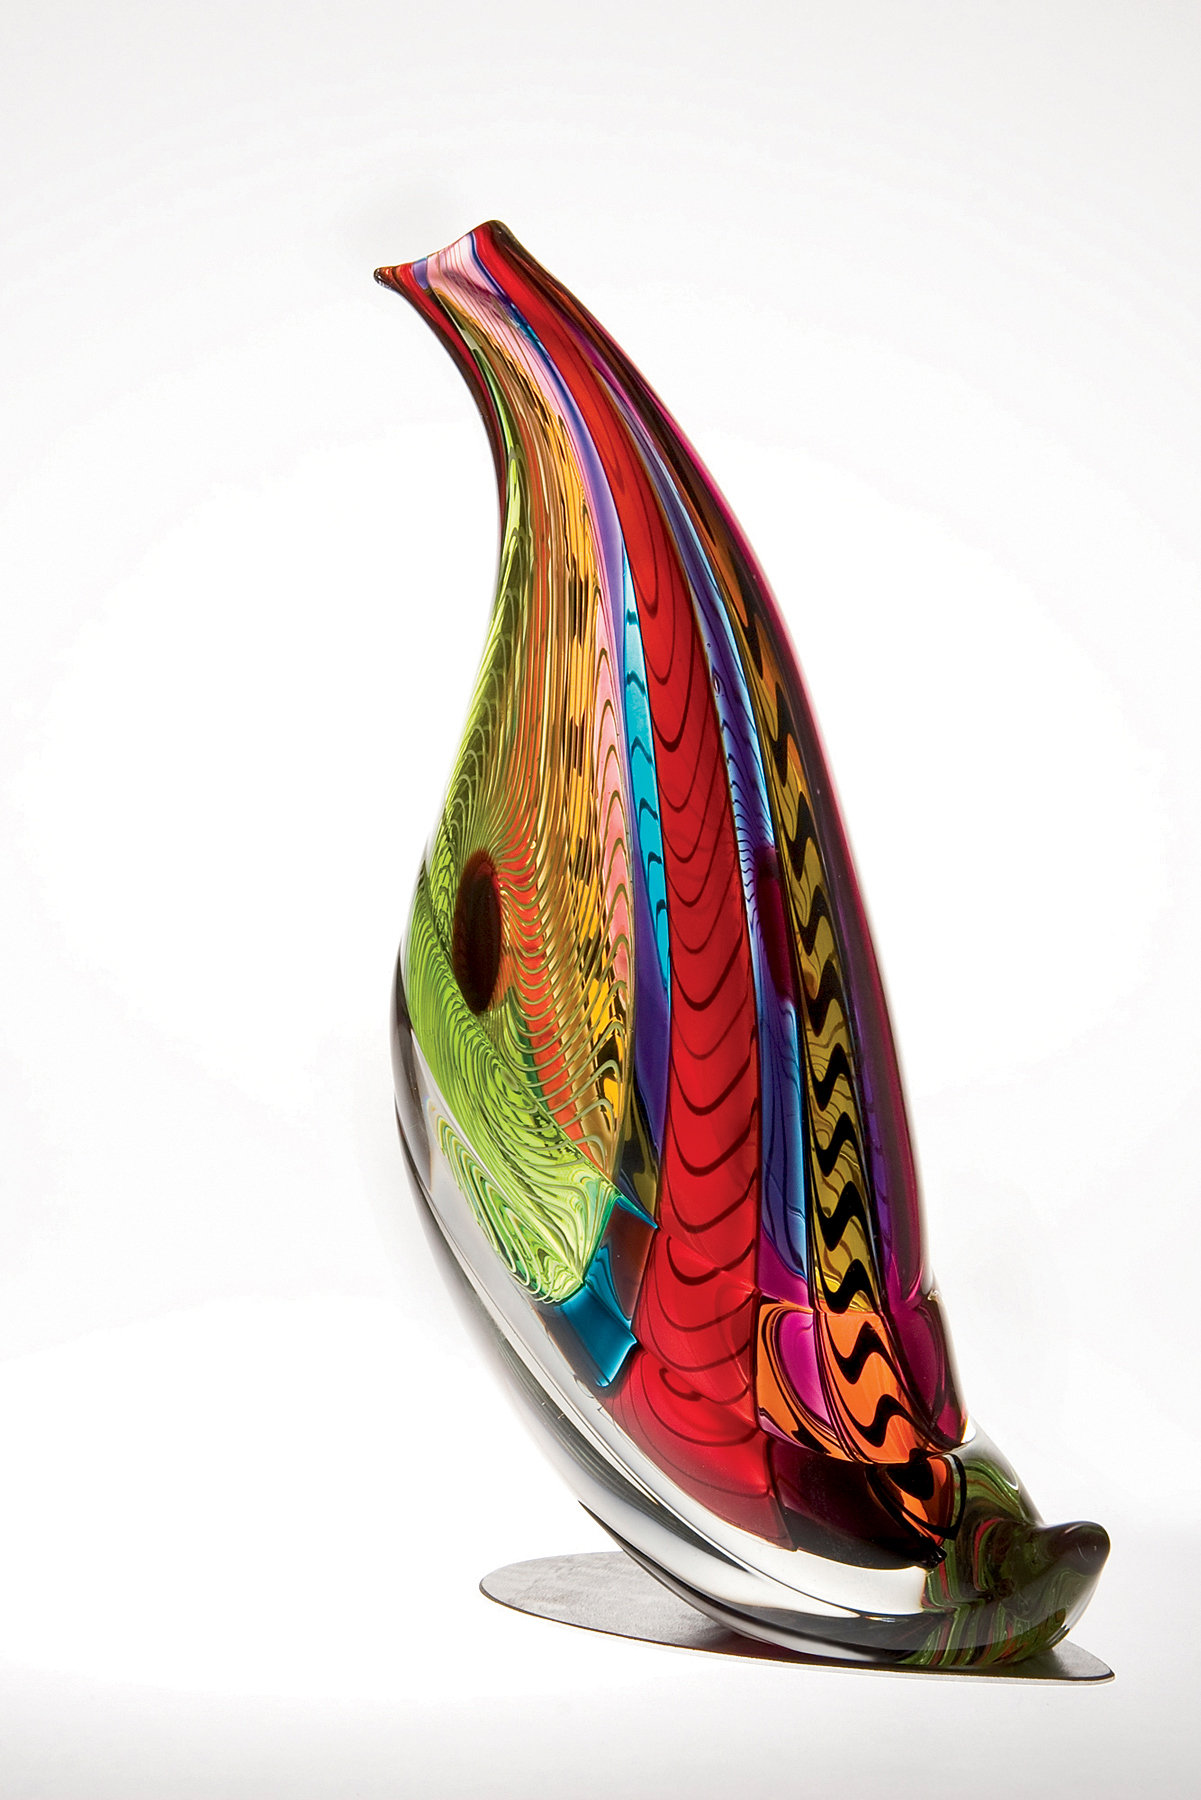 Quail sculpture by mike wallace art glass